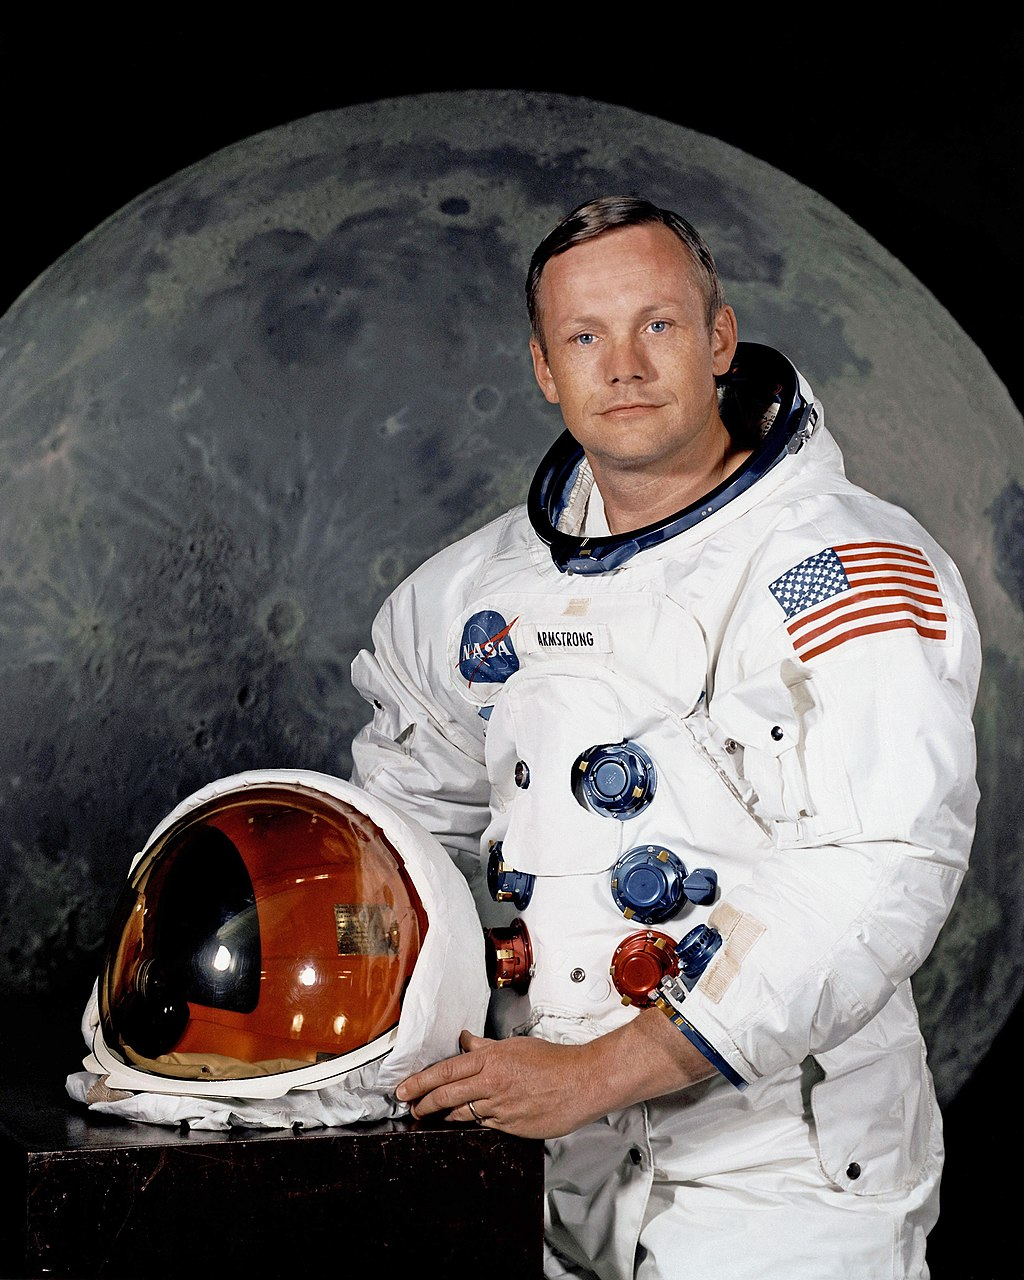 Earthlings Can Reach The Moon: A Tribute